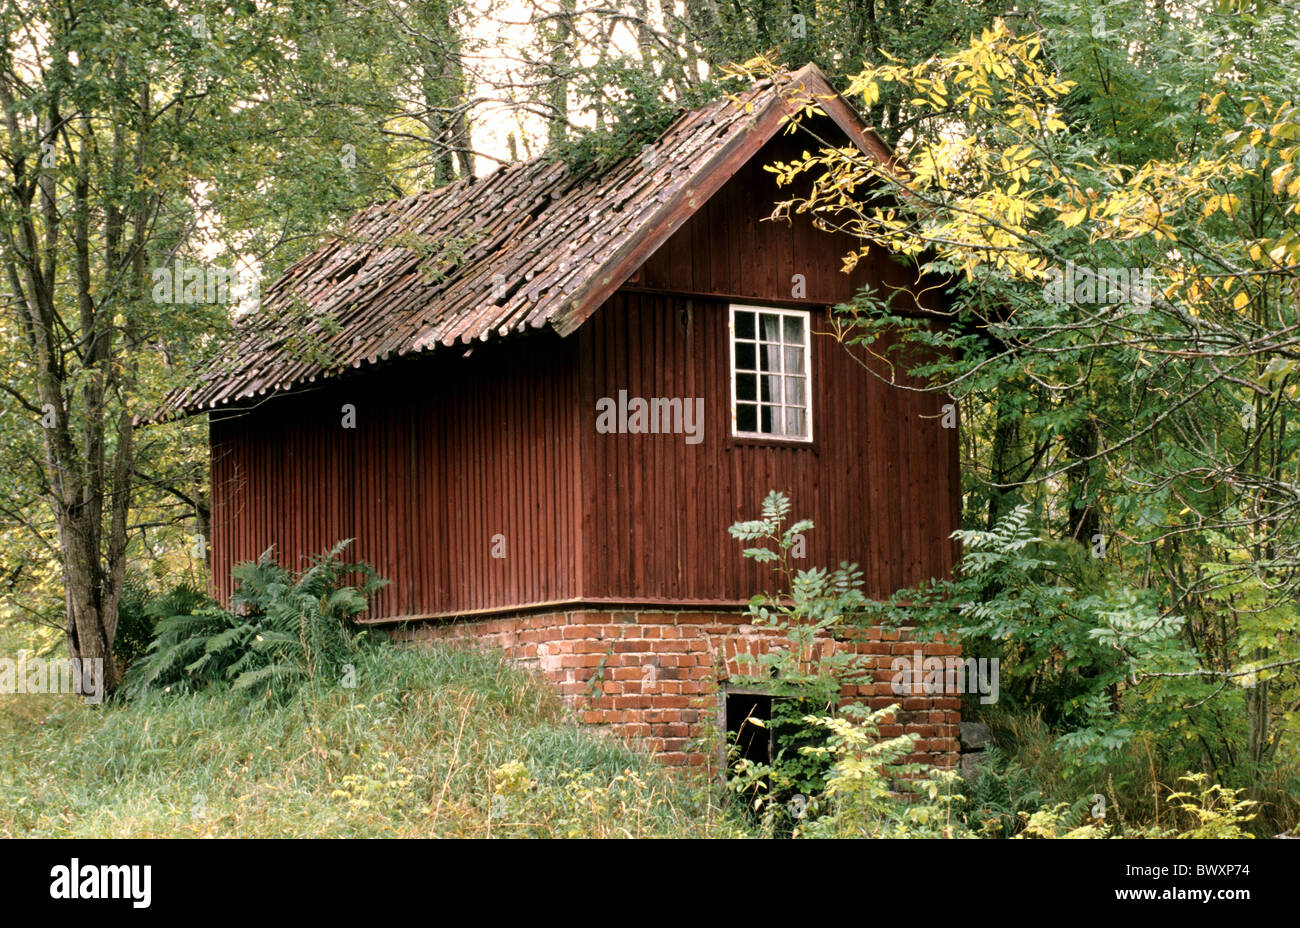 Stock photo timber house wooden hut forest hut red brown wood forest sweden europe vastmanland near frohholmen hut